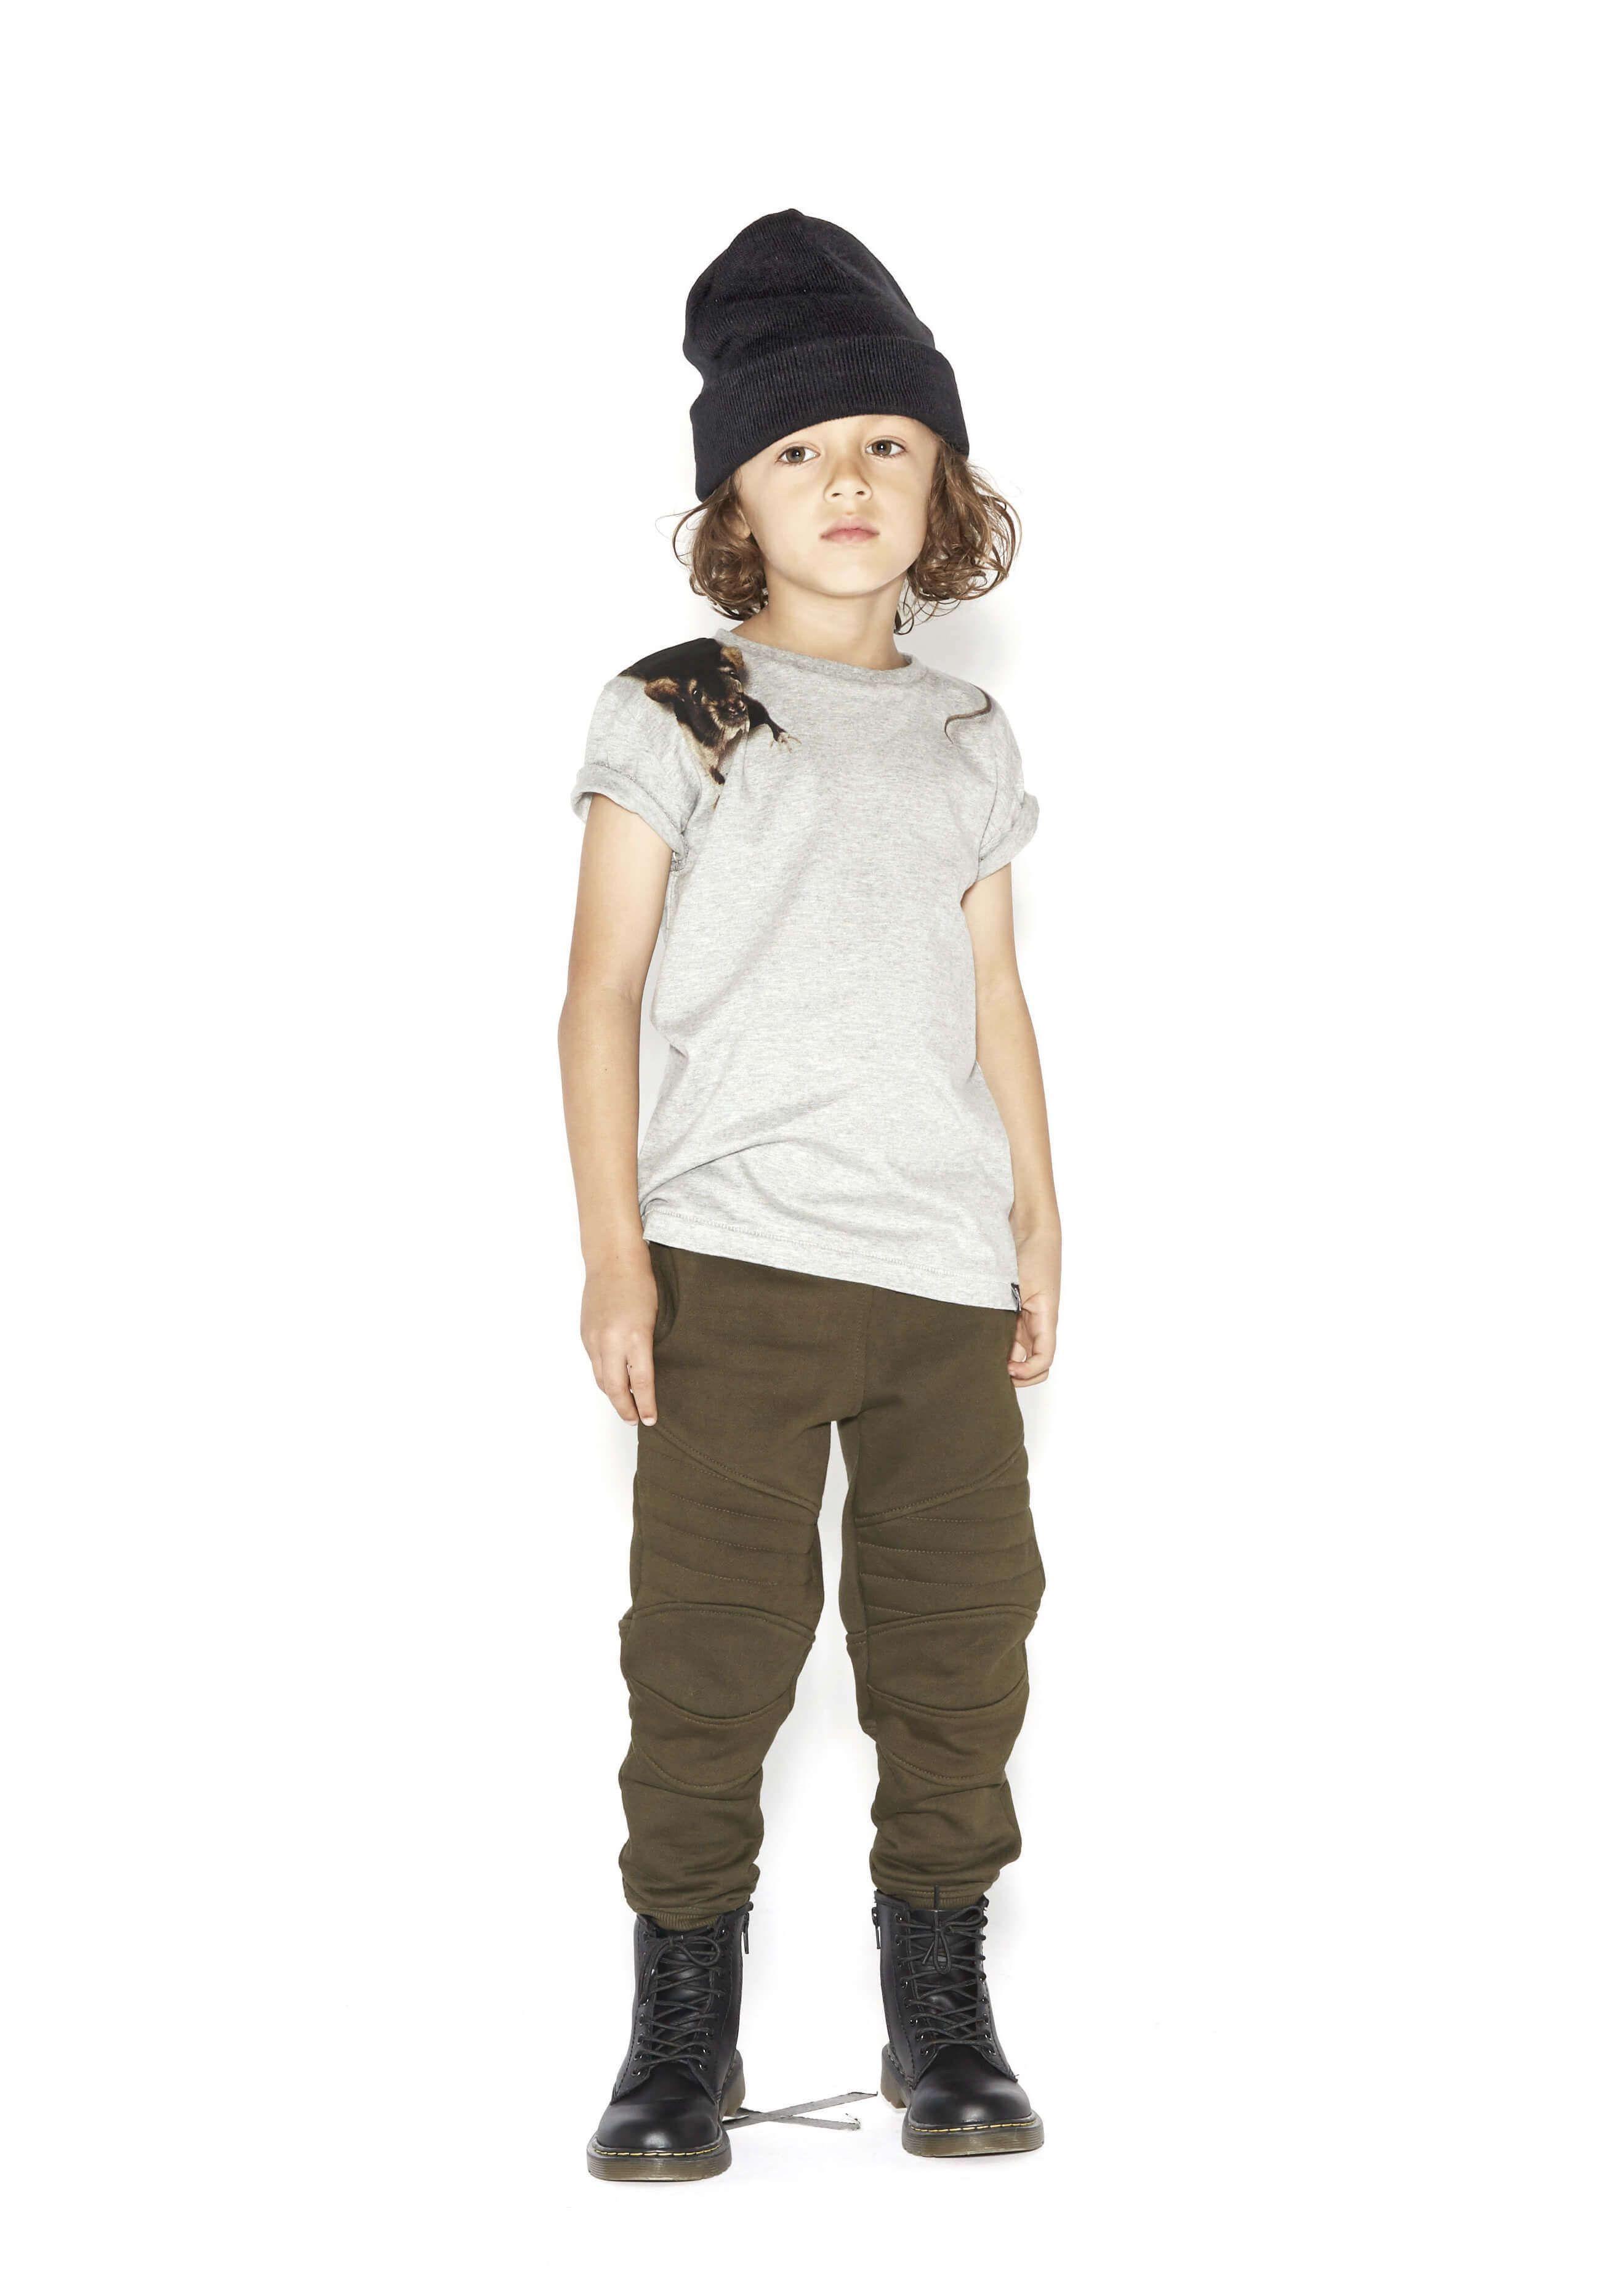 See this cool clothing from molo kids molokids